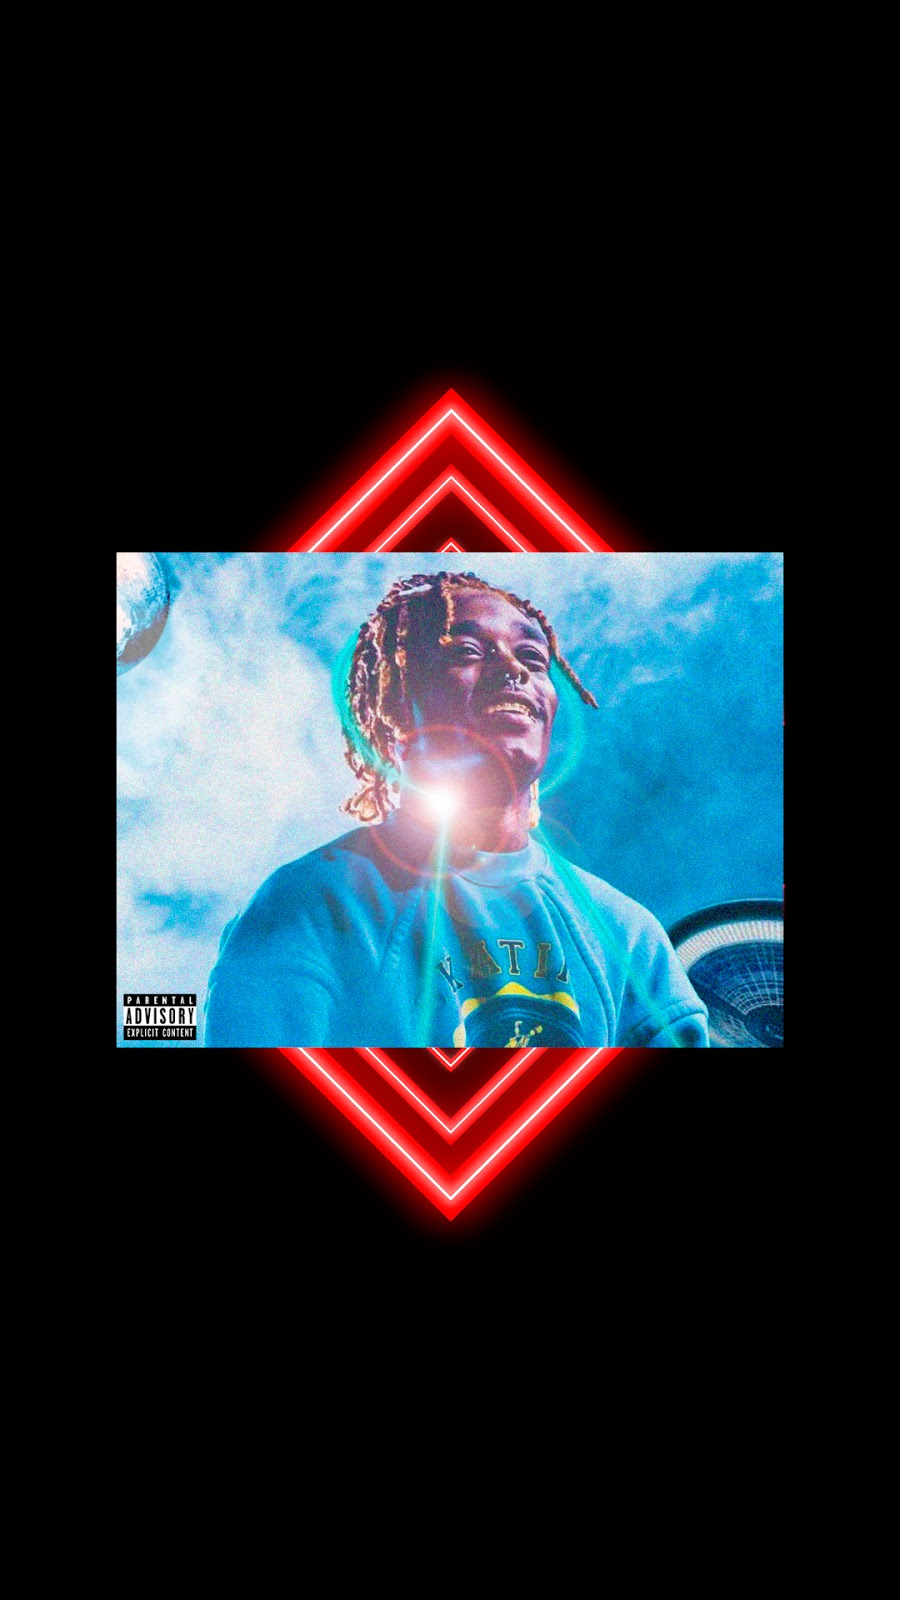 Lil Uzi Vert Eternal Atake Wallpaper Heroscreen Cool Wallpapers Tumblr is a place to express yourself discover yourself and bond over the stuff you love. lil uzi vert eternal atake wallpaper